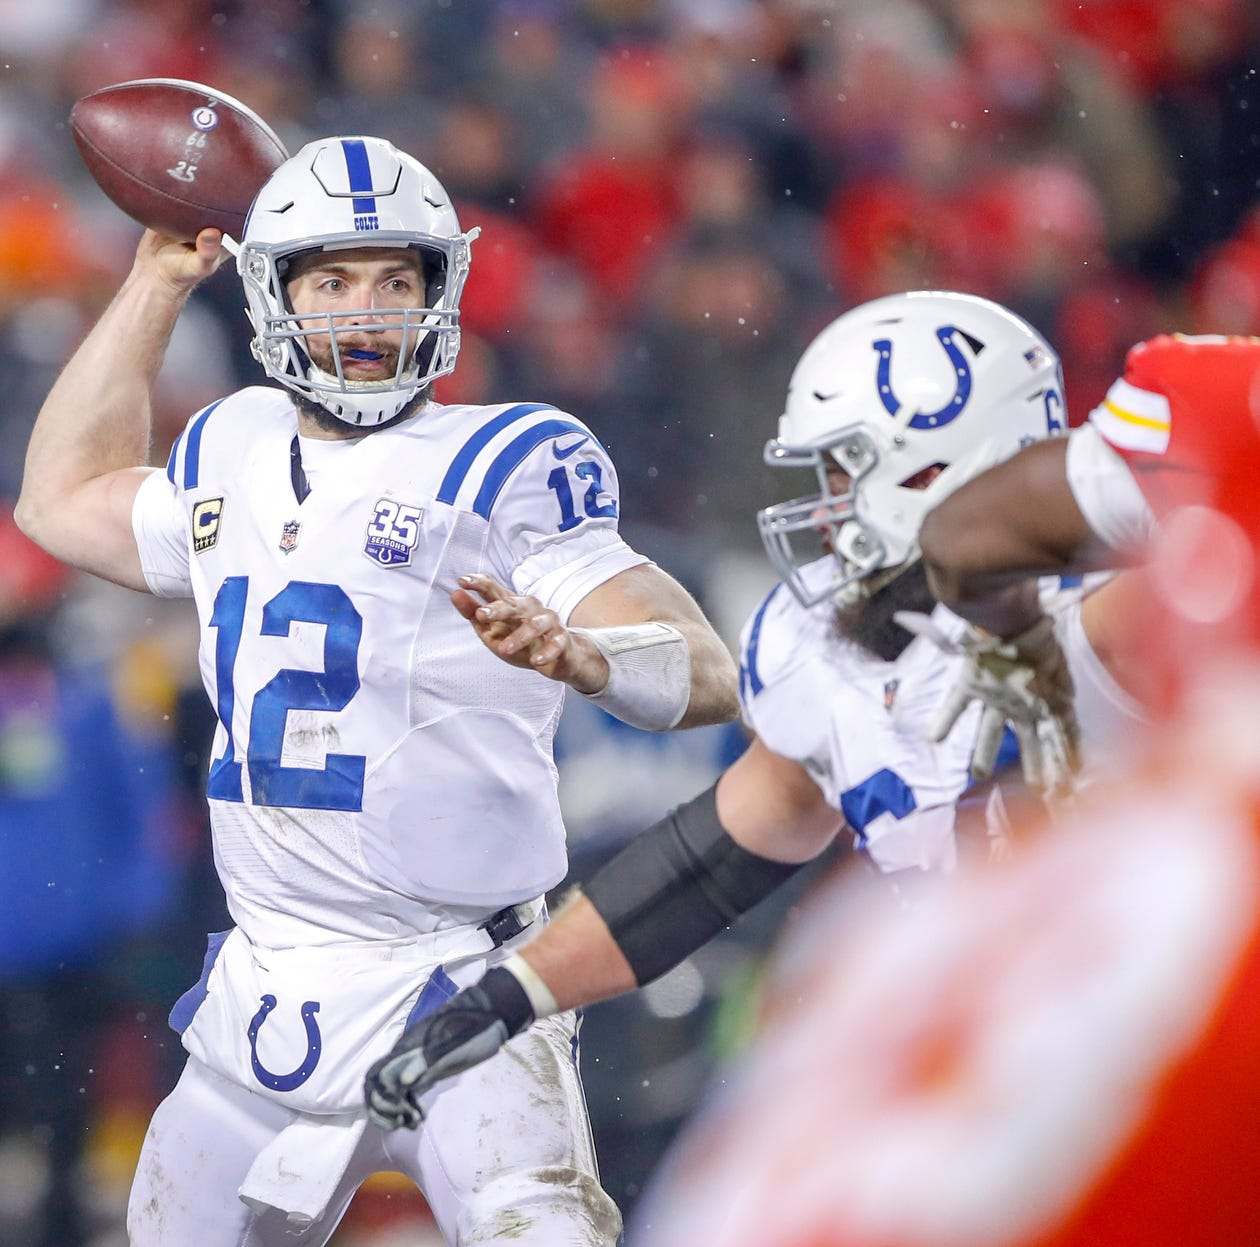 2019 Colts schedule: Indy will see Chiefs, Saints in prime time